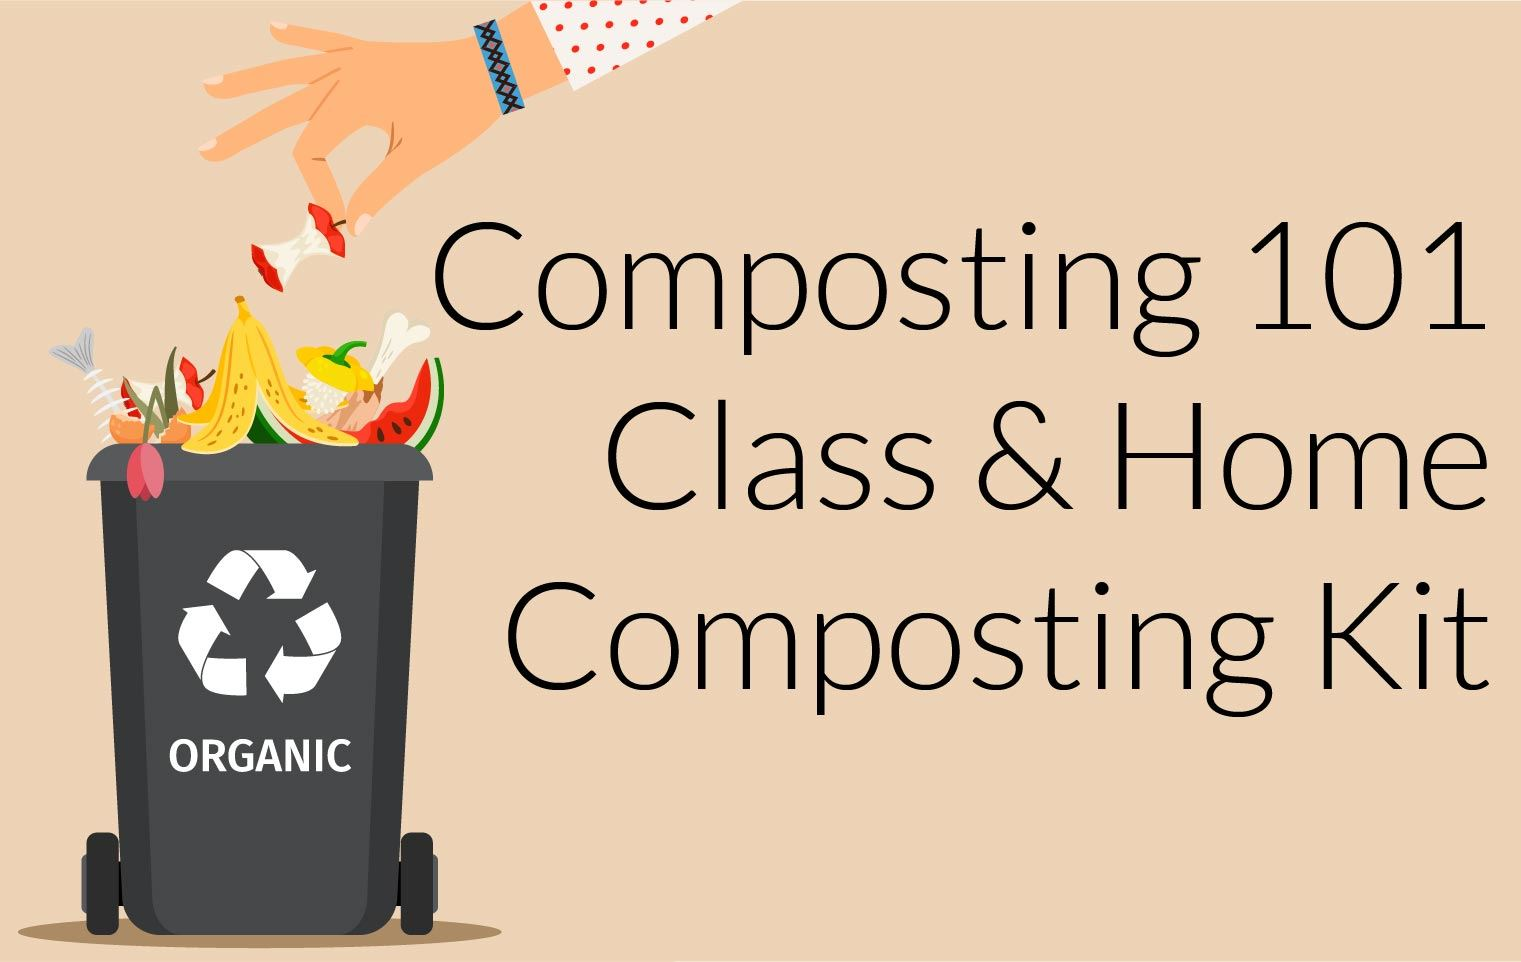 News Section Template - Composting